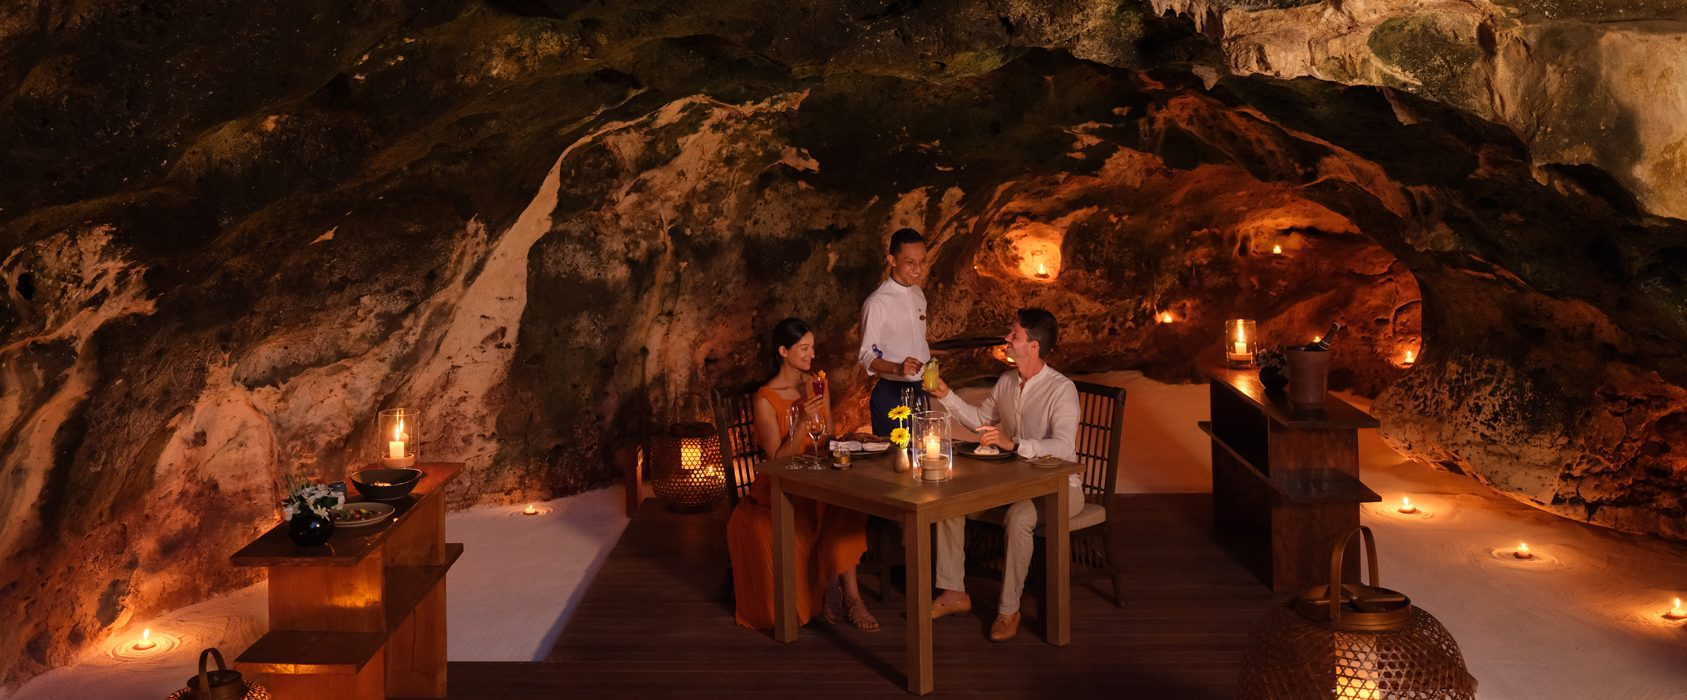 Raffles Bali - An Intimate Dinner at The Secret Cave